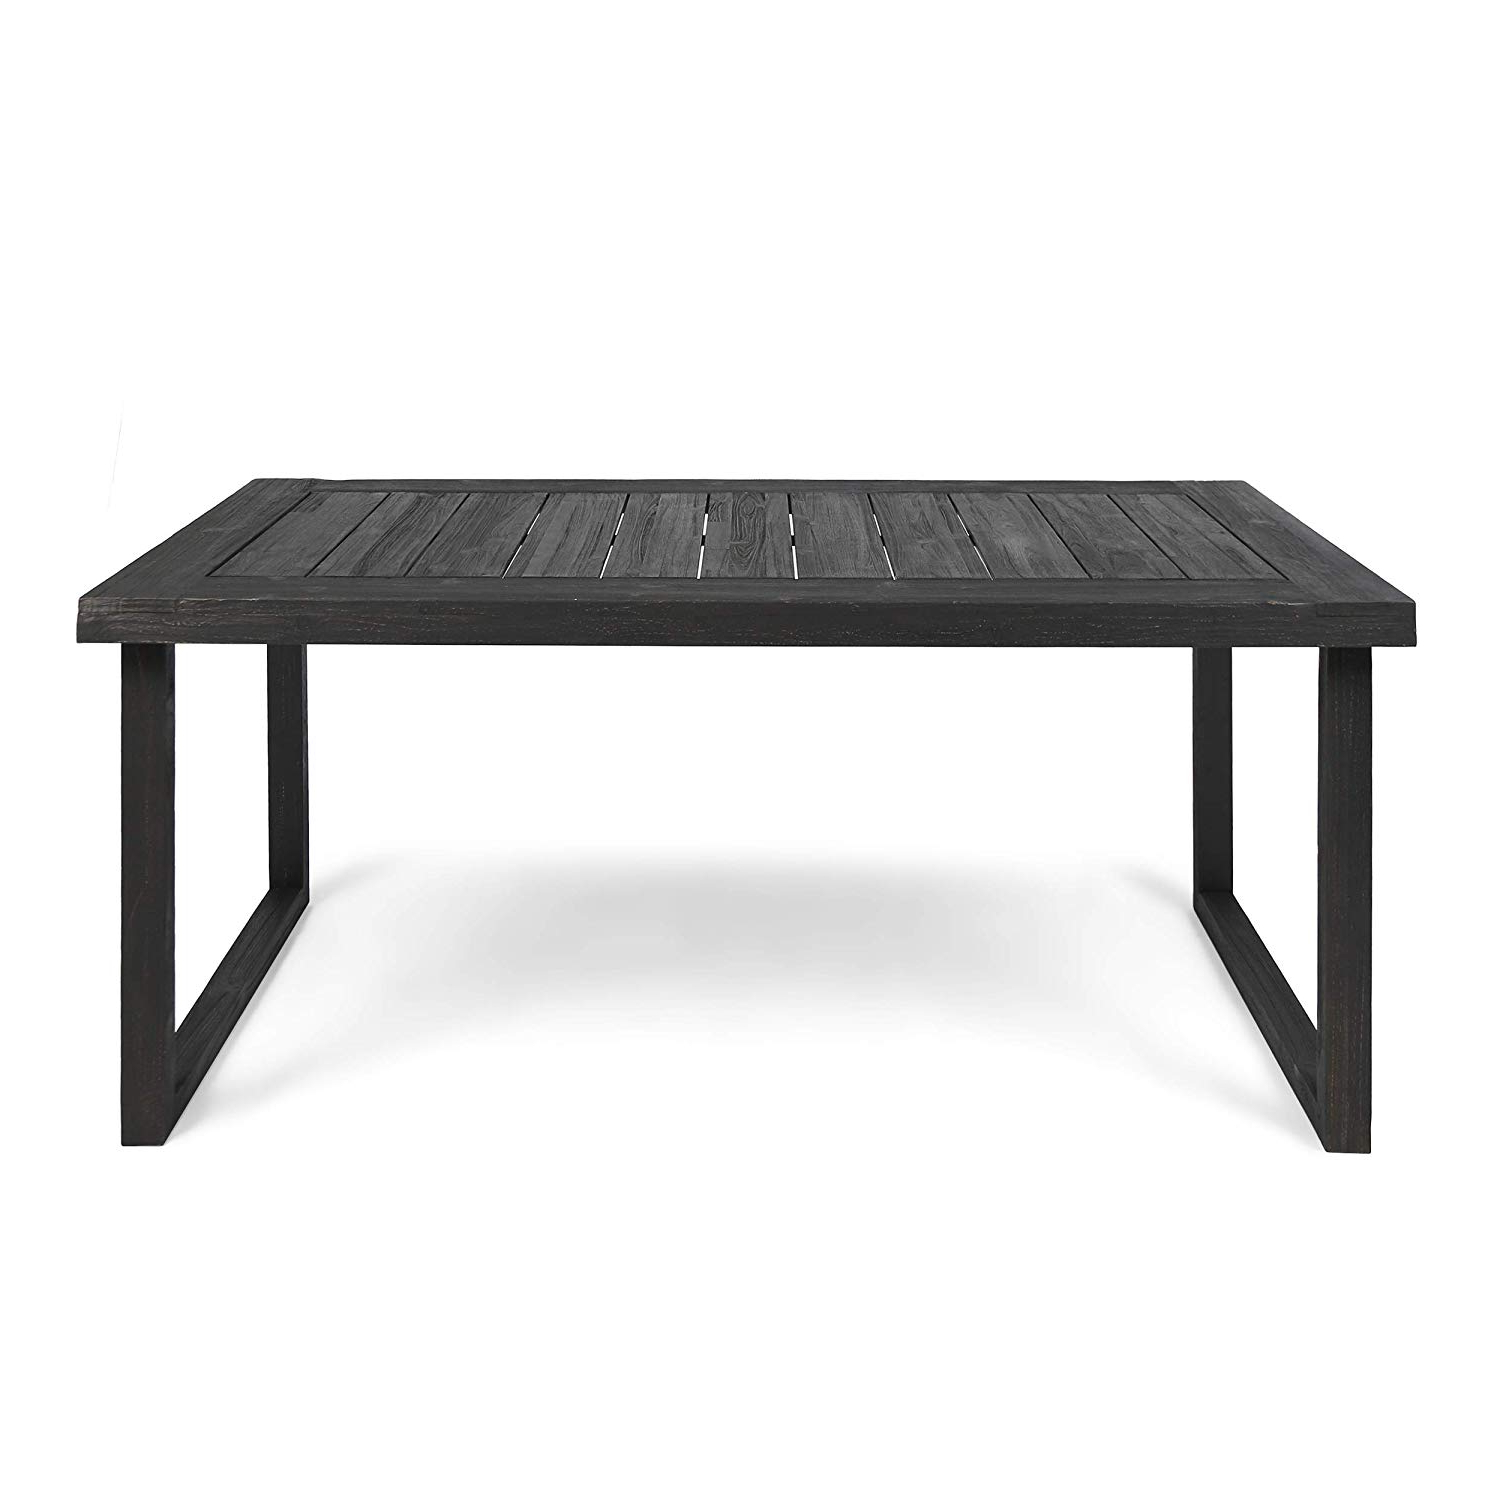 "Preferred Acacia Dining Tables With Black X Leg With Christopher Knight Home Ann Outdoor 69"" Acacia Wood Dining Table, Sandblast Dark Gray Finish (View 11 of 25)"